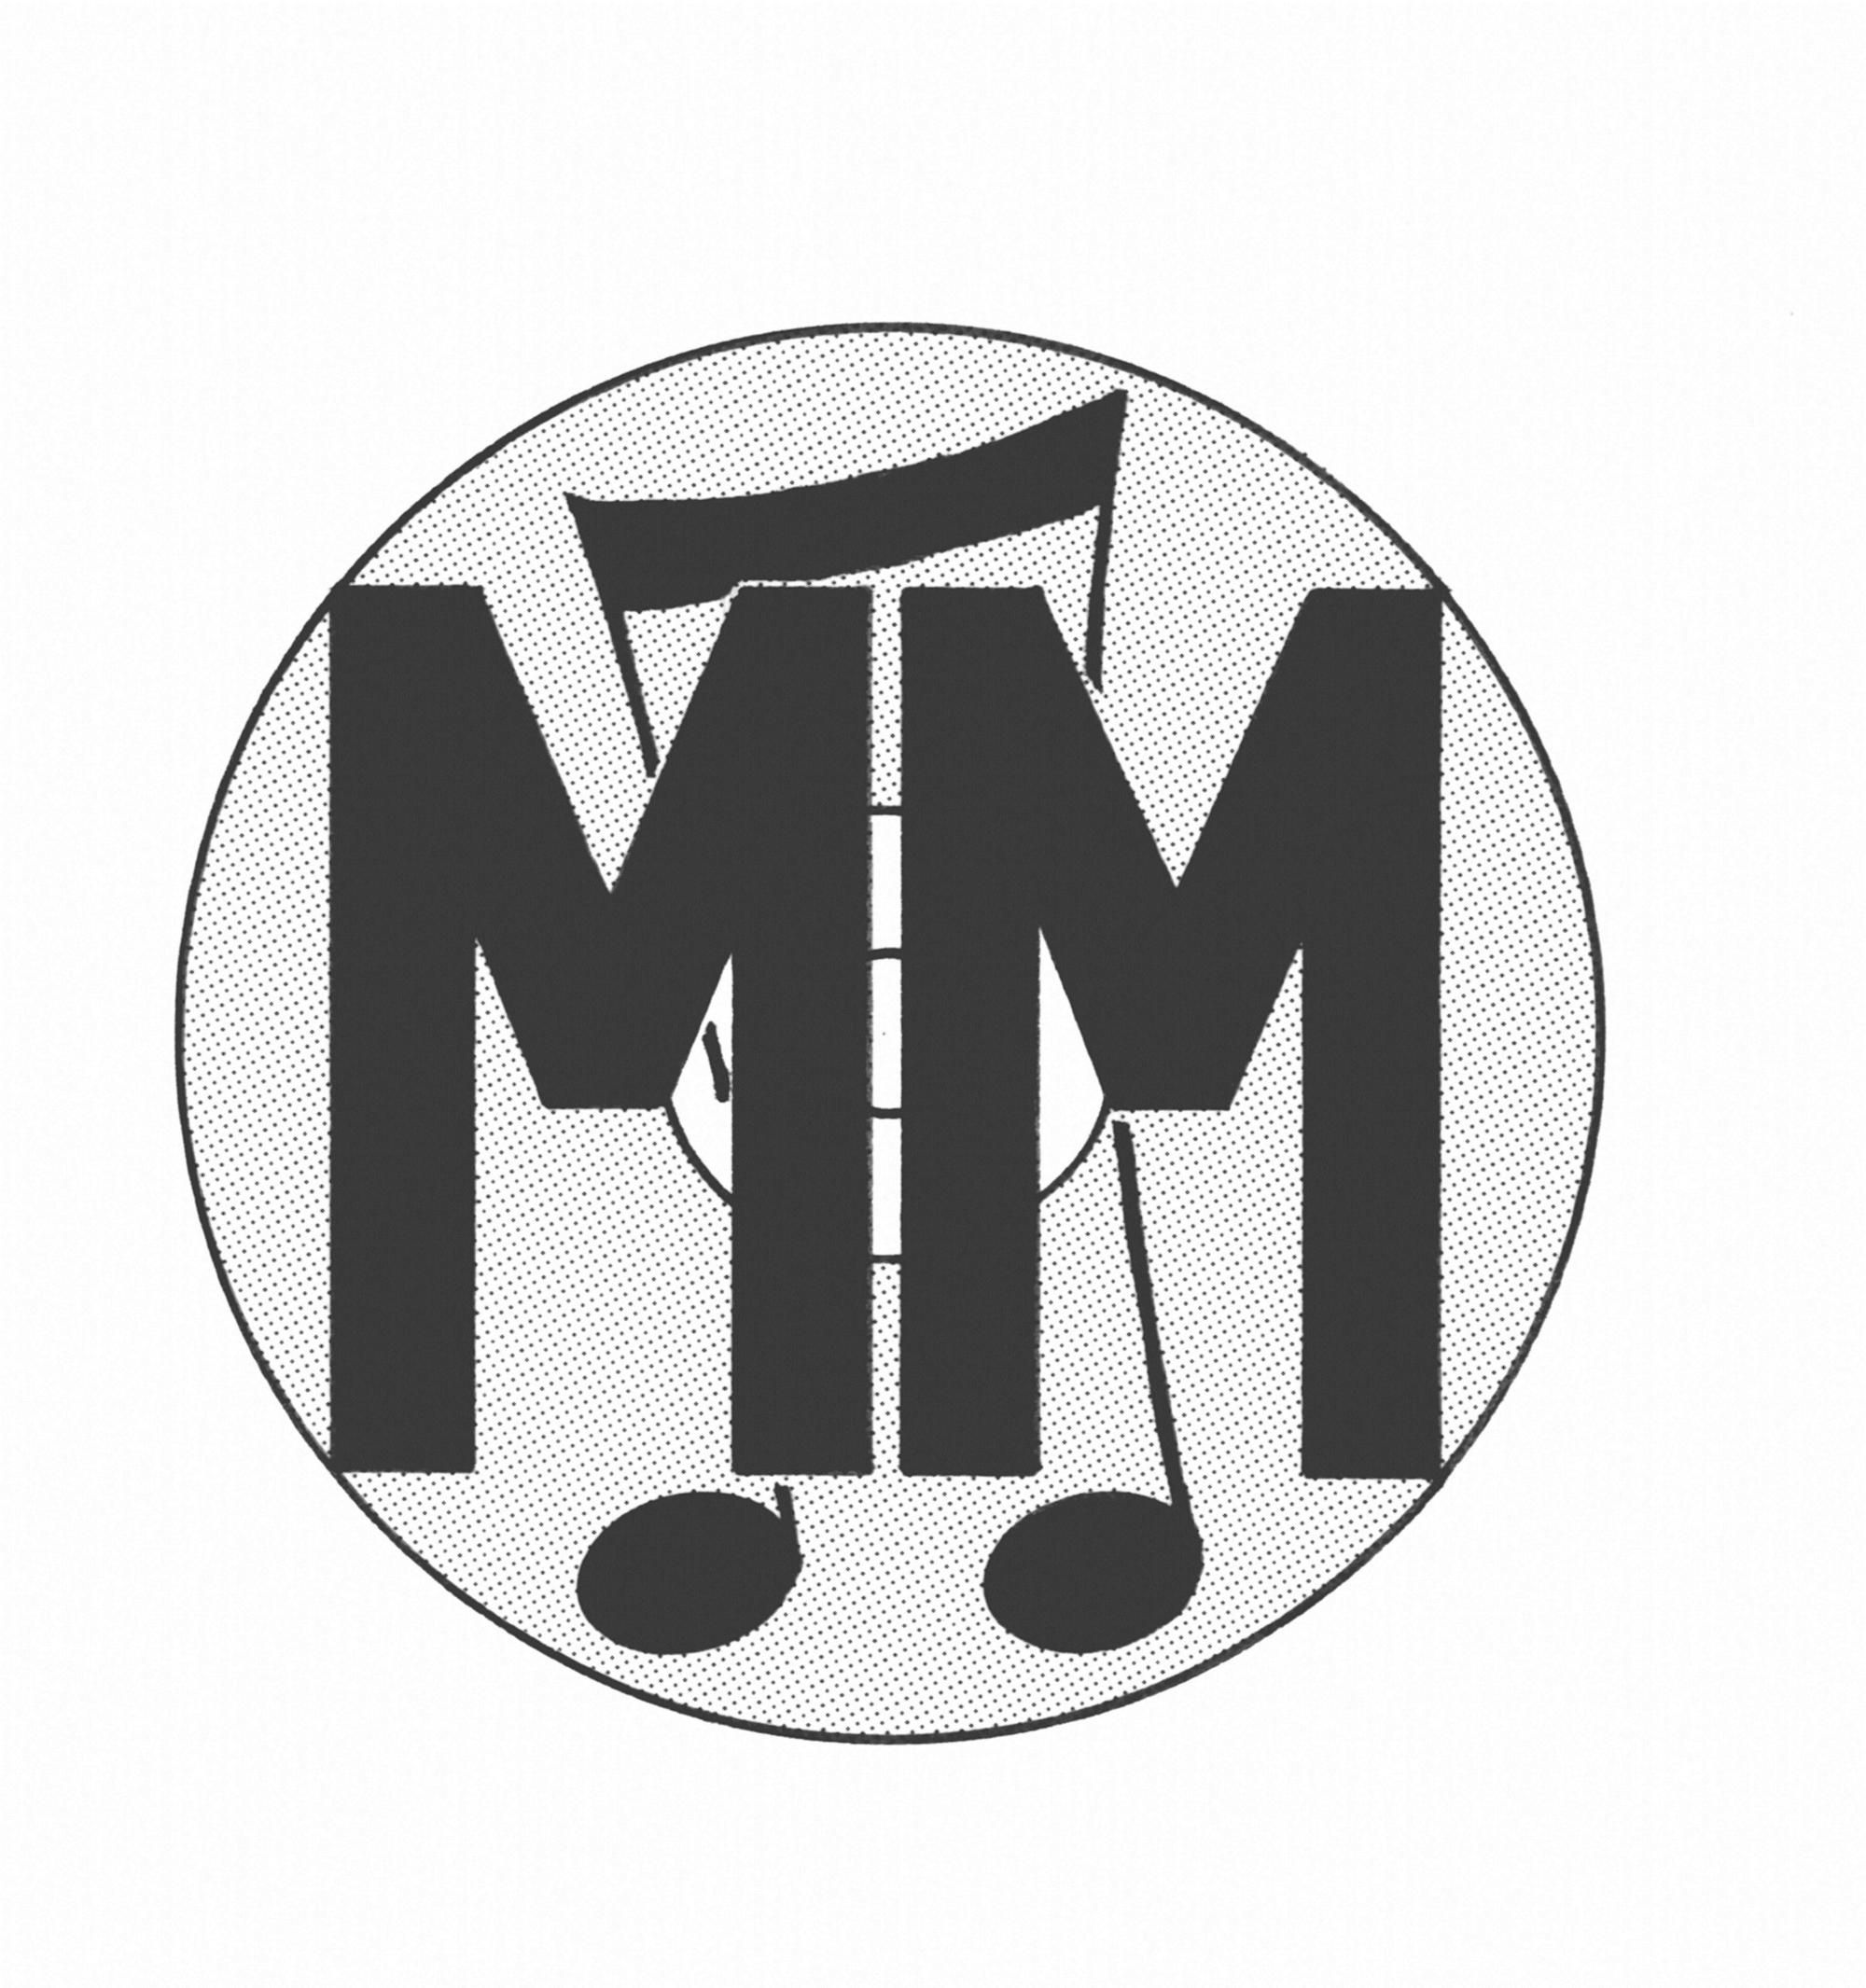 hight resolution of m m logo clipart 1